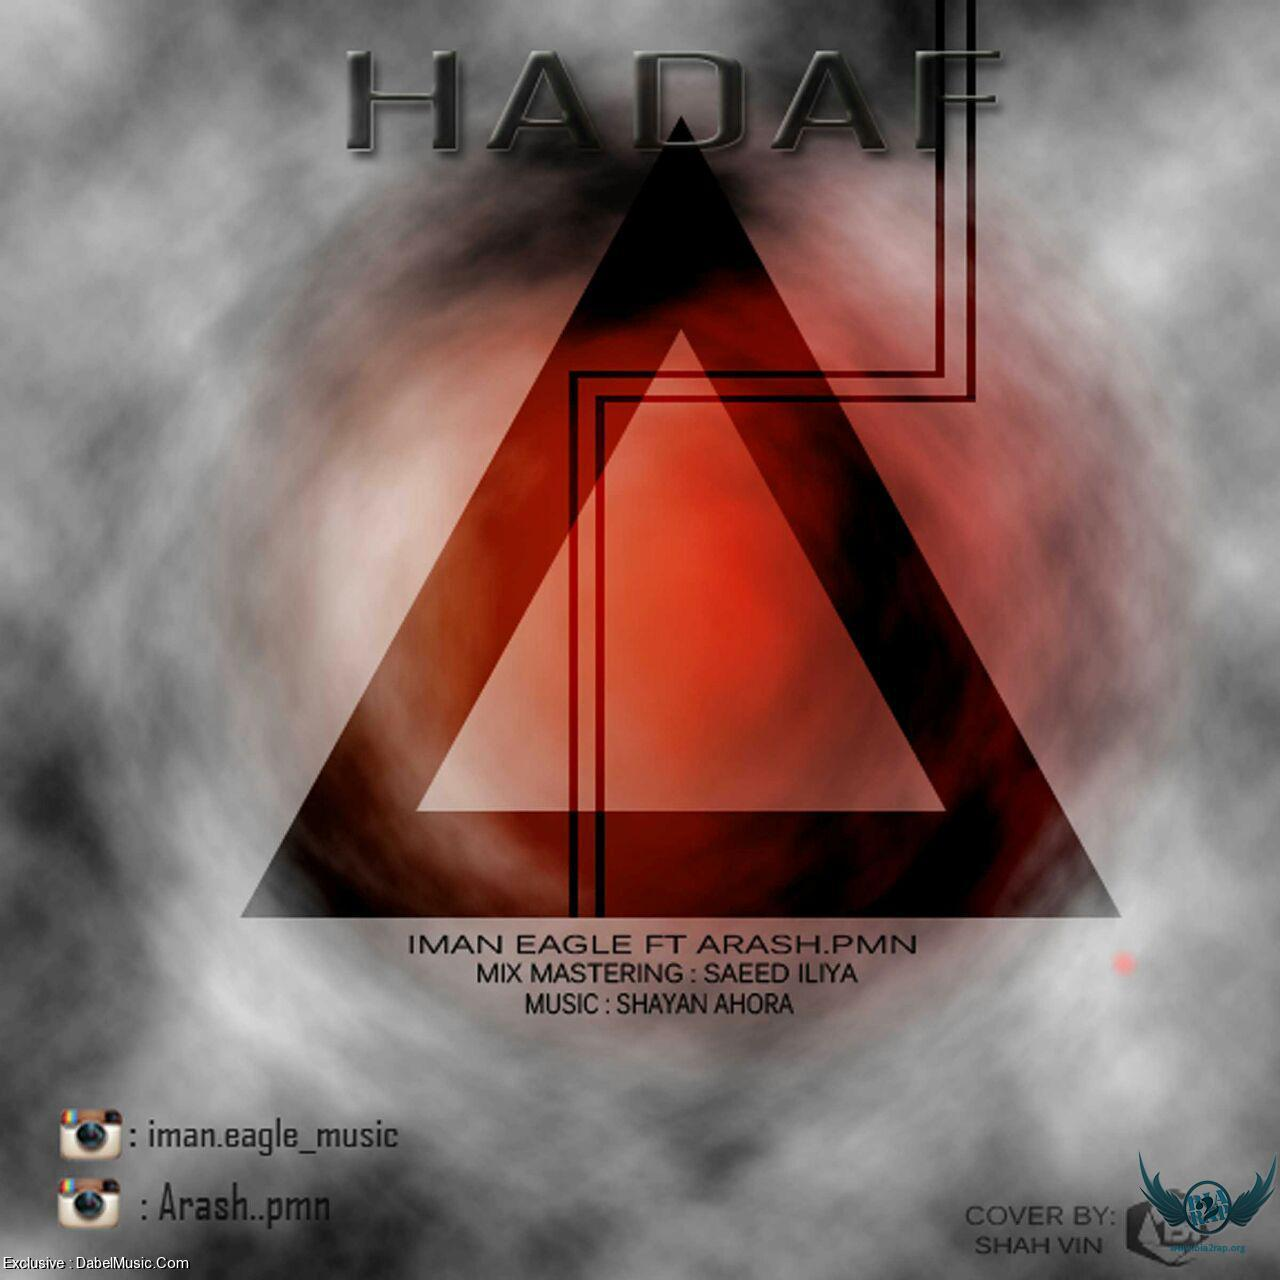 Iman Eagle Ft Arash Pmn - Hadaf